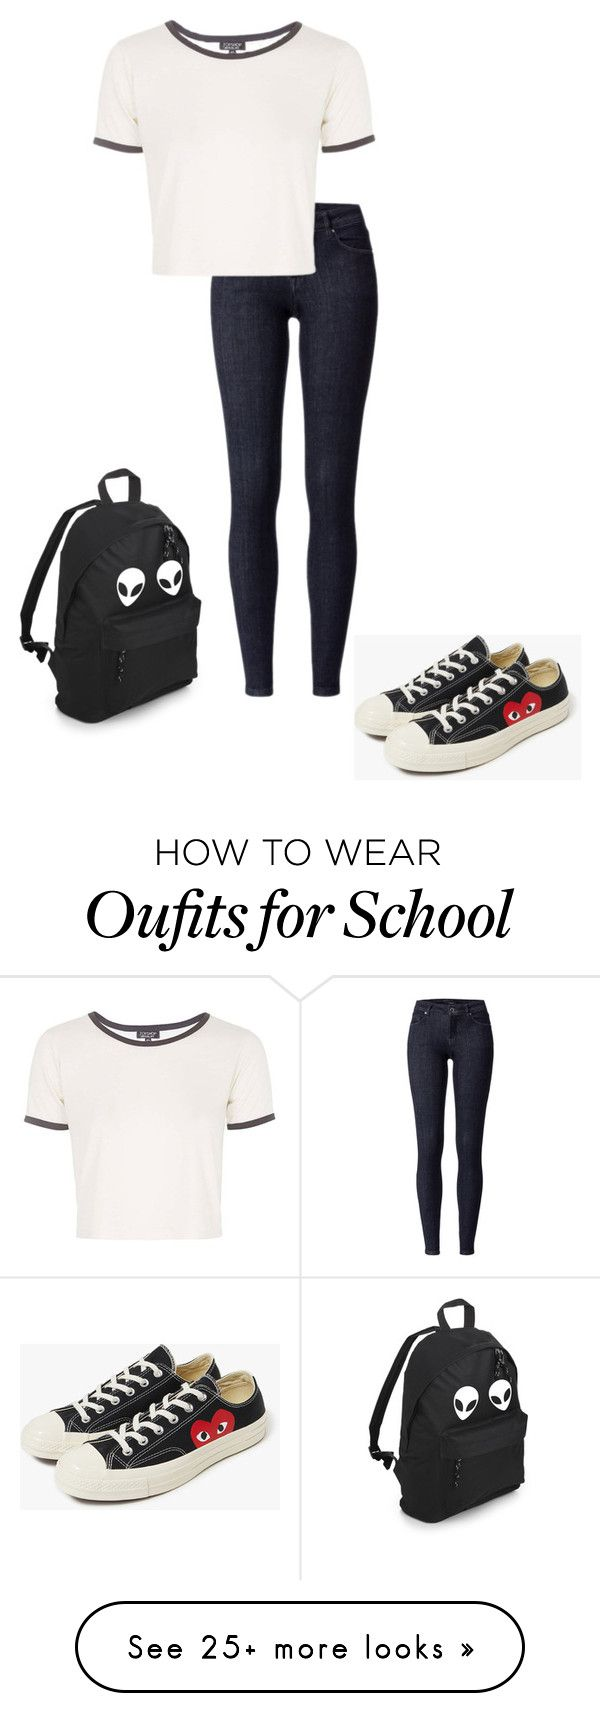 """Untitled #212"" by lulugurl98 on Polyvore featuring Topshop"